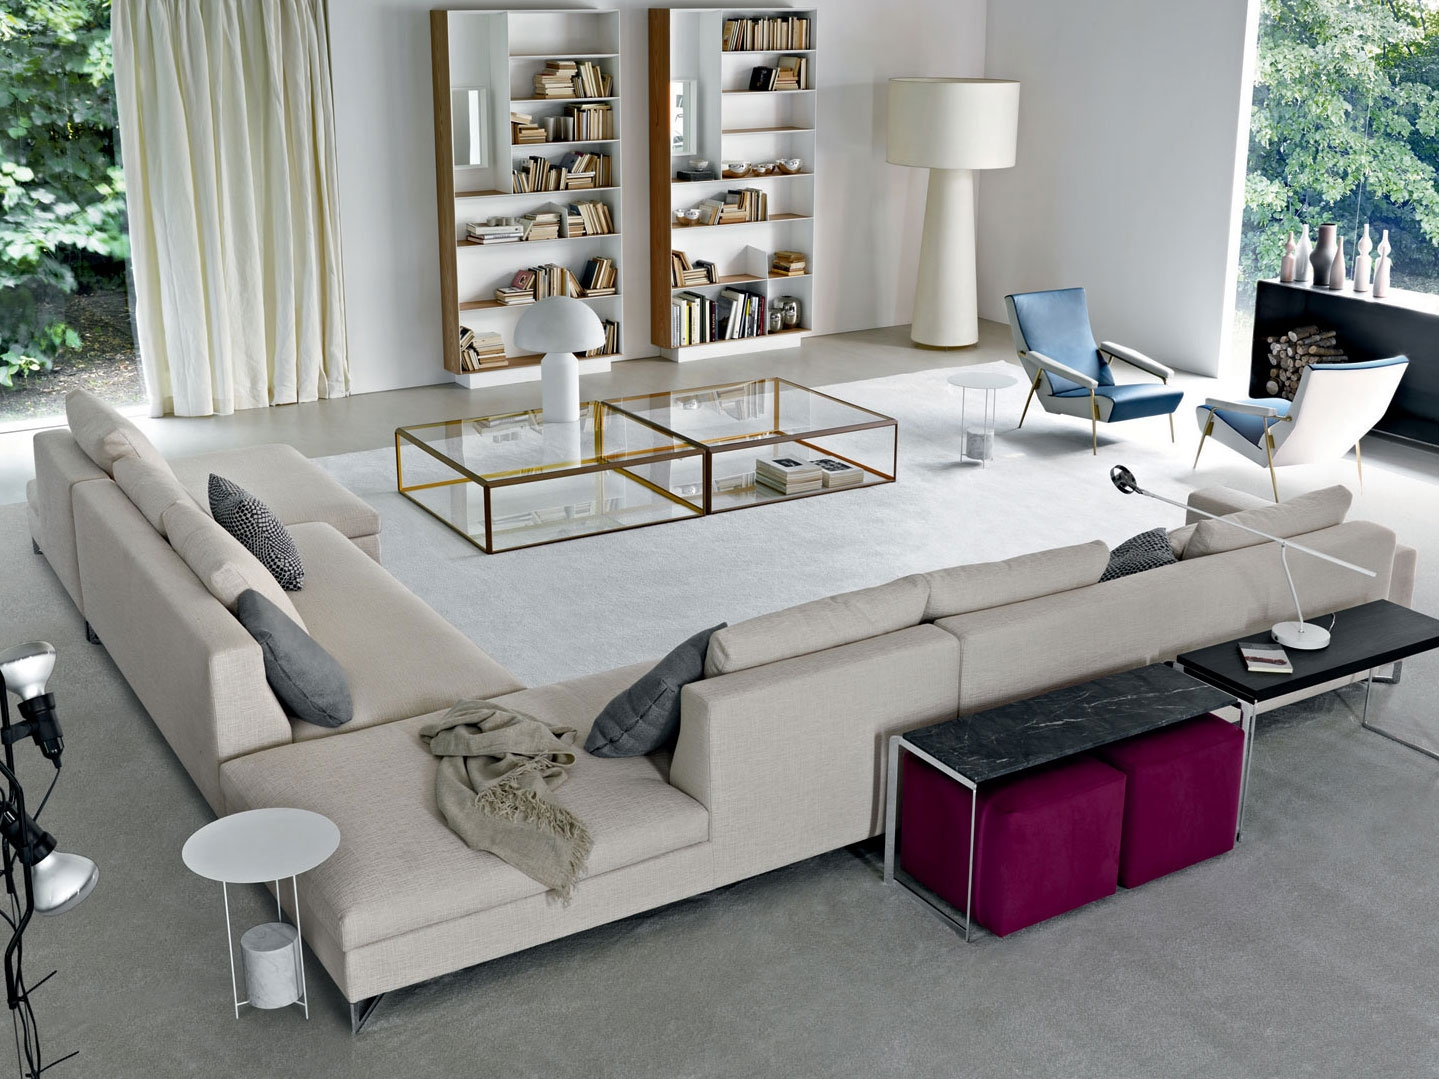 Sofa with Chaise Lounge | Tufted Sectional | Large Sectional Sofas